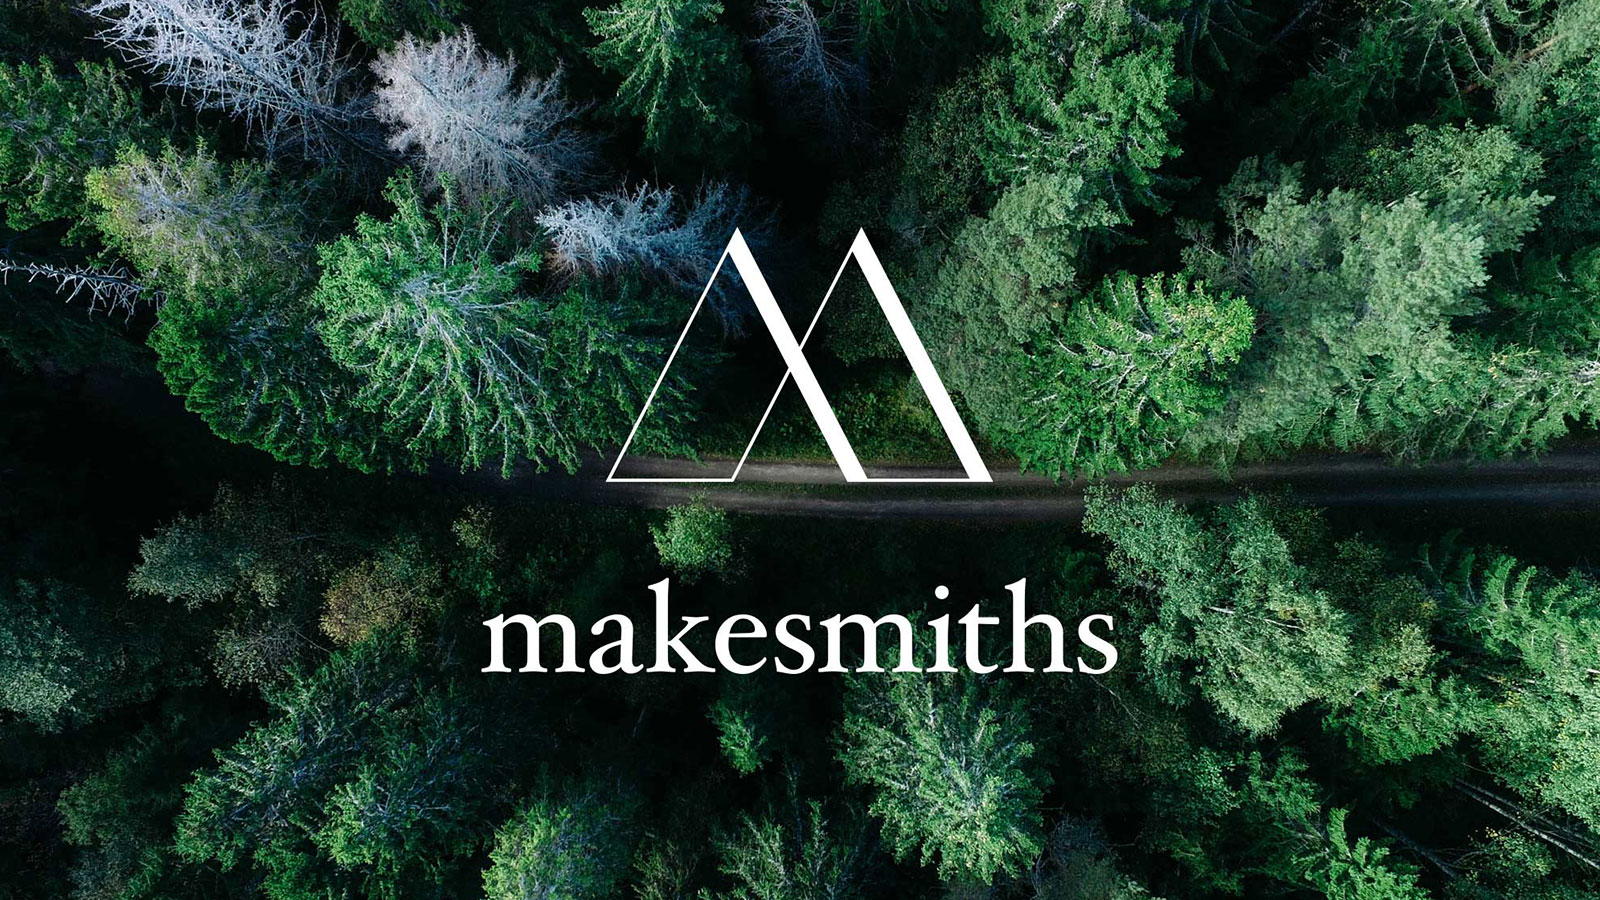 makesmiths-by-also-agency-5.jpg